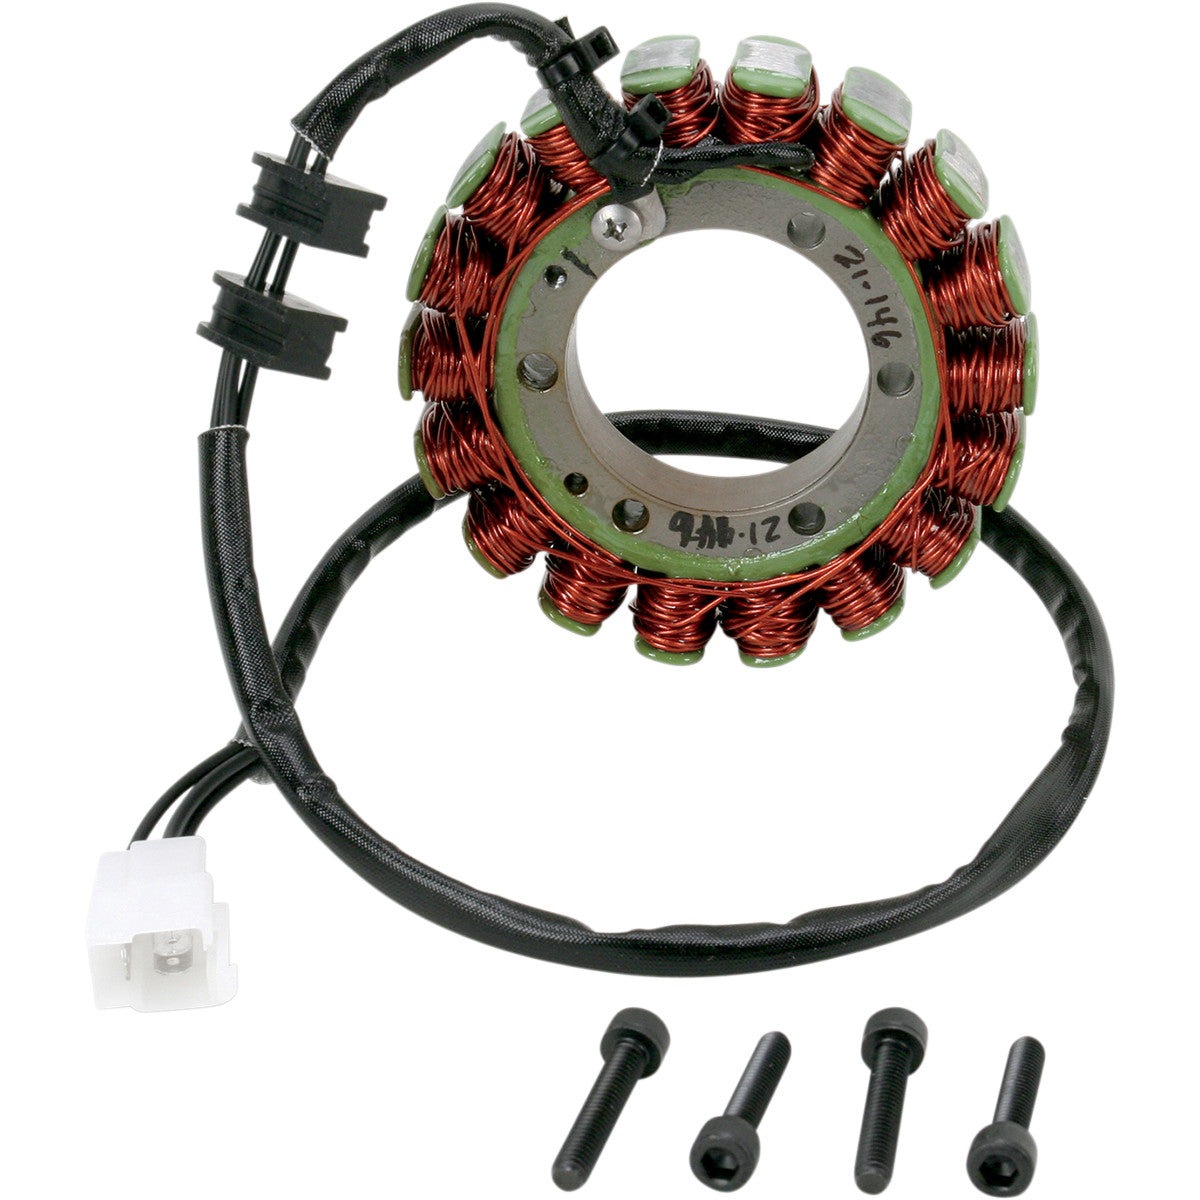 2112-0607 RICK'S MOTORSPORT ELECTRIC Alternator Stator STATOR HONDA 21-146